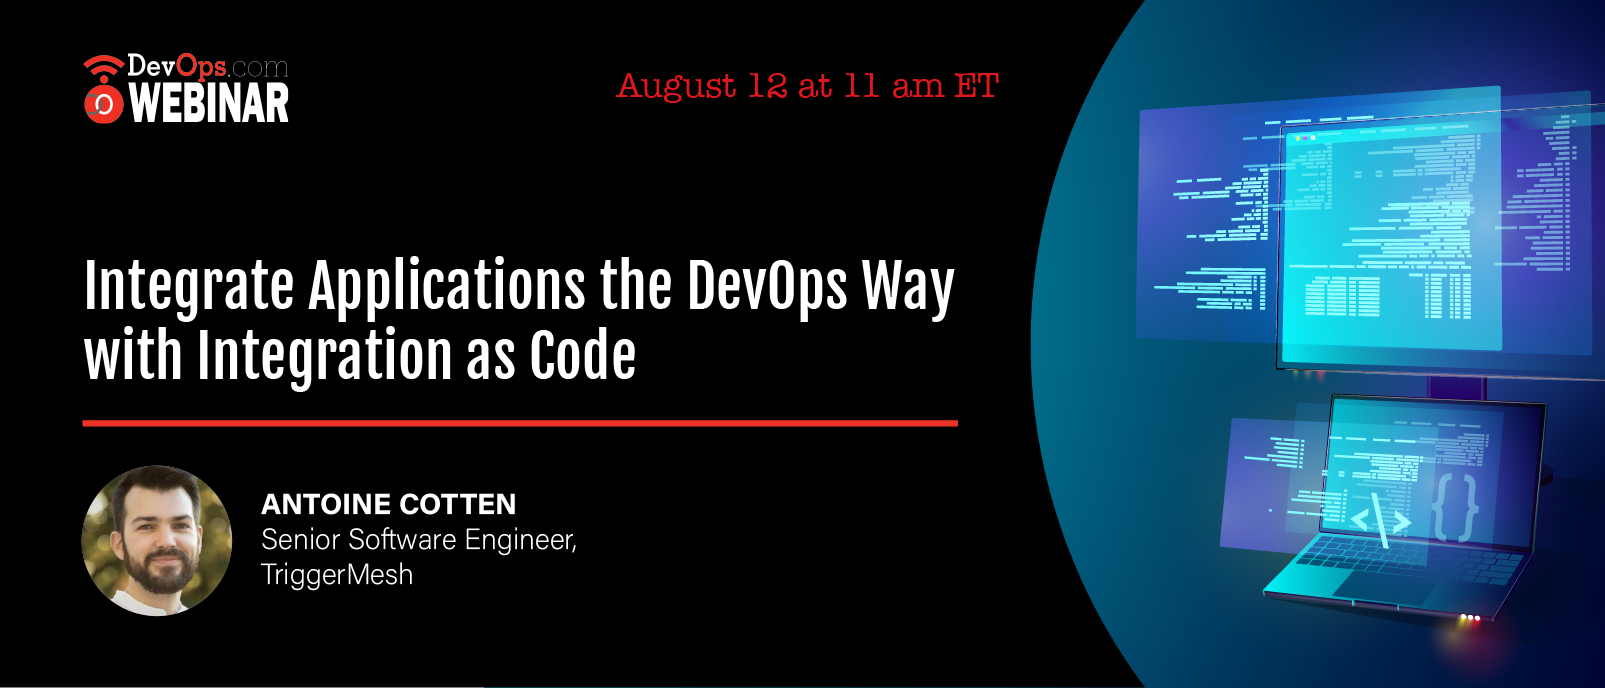 Aug. 12: Webinar: Integrate Applications the DevOps Way With Integration as Code